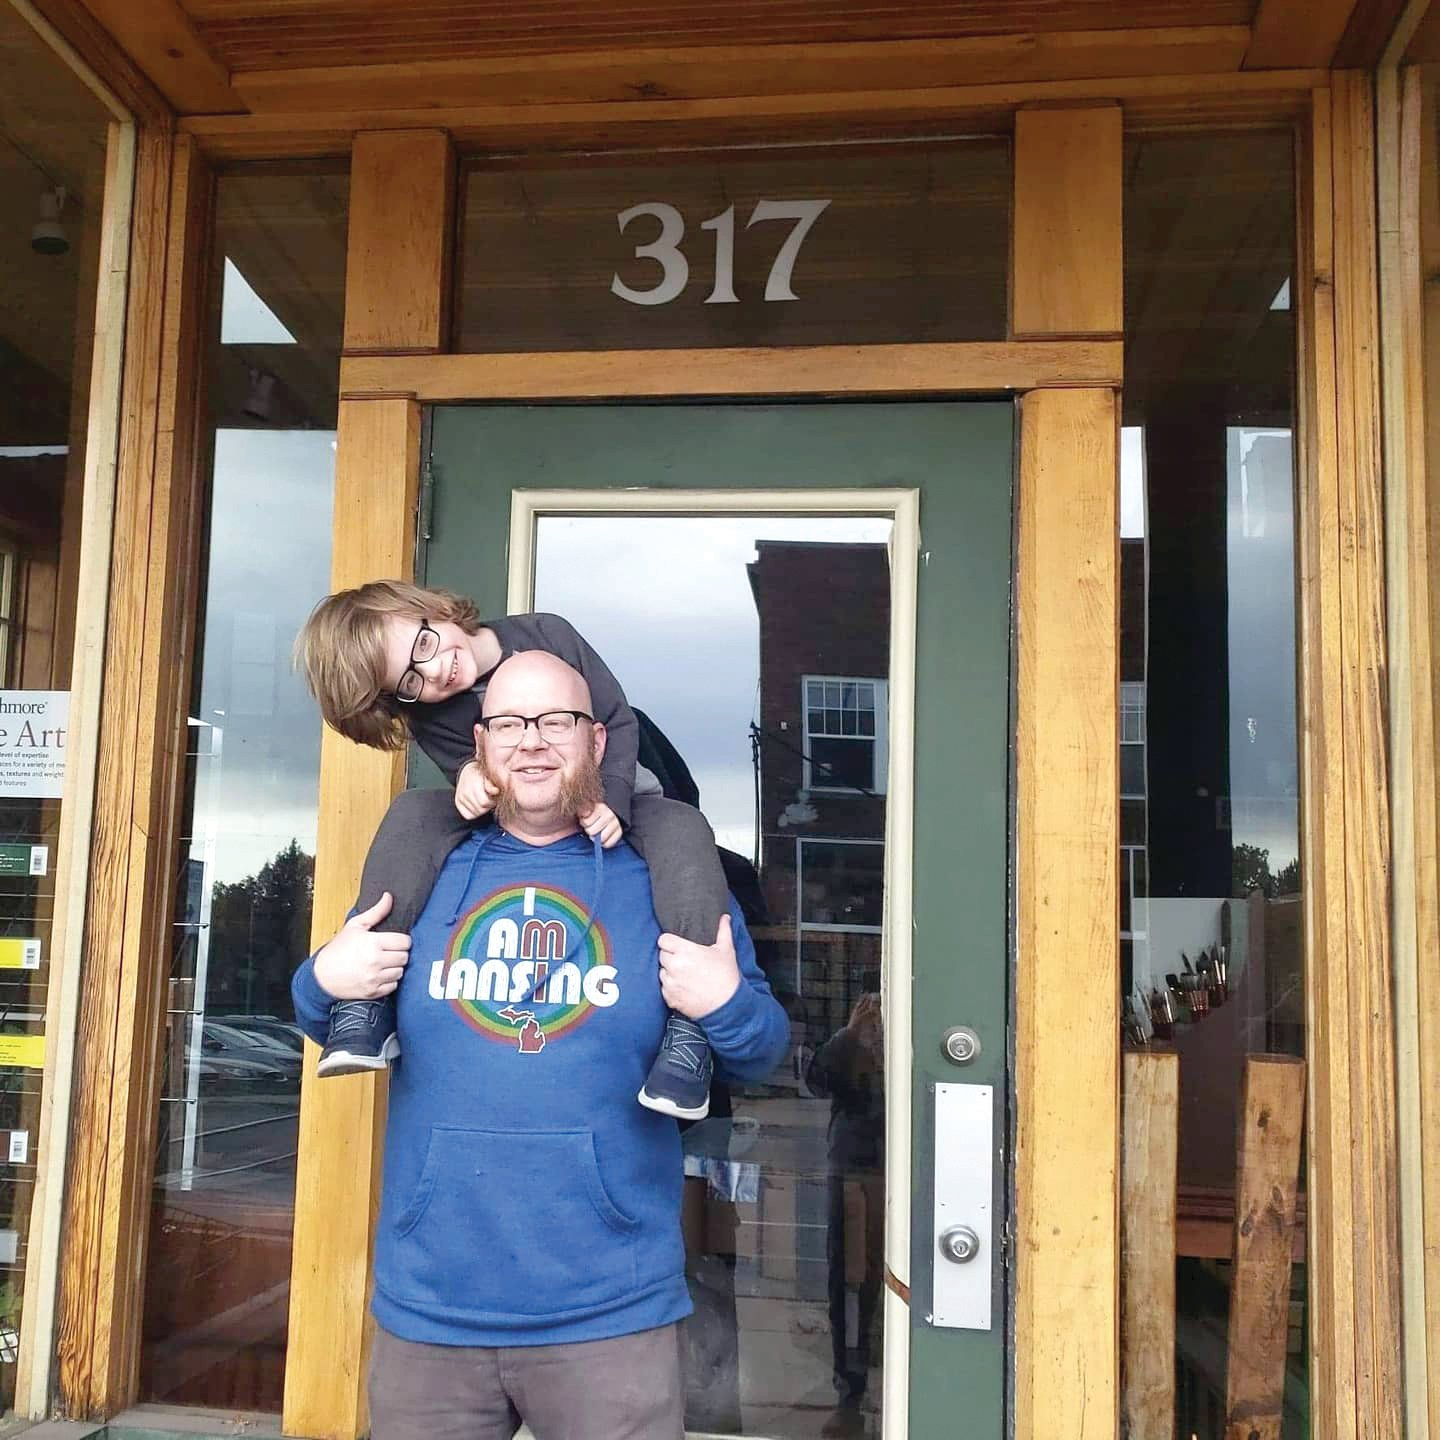 Odd Nodd Art Supply owner Casey Sorrow with his son in front of his new location at 317 Cesar E. Chavez Ave.